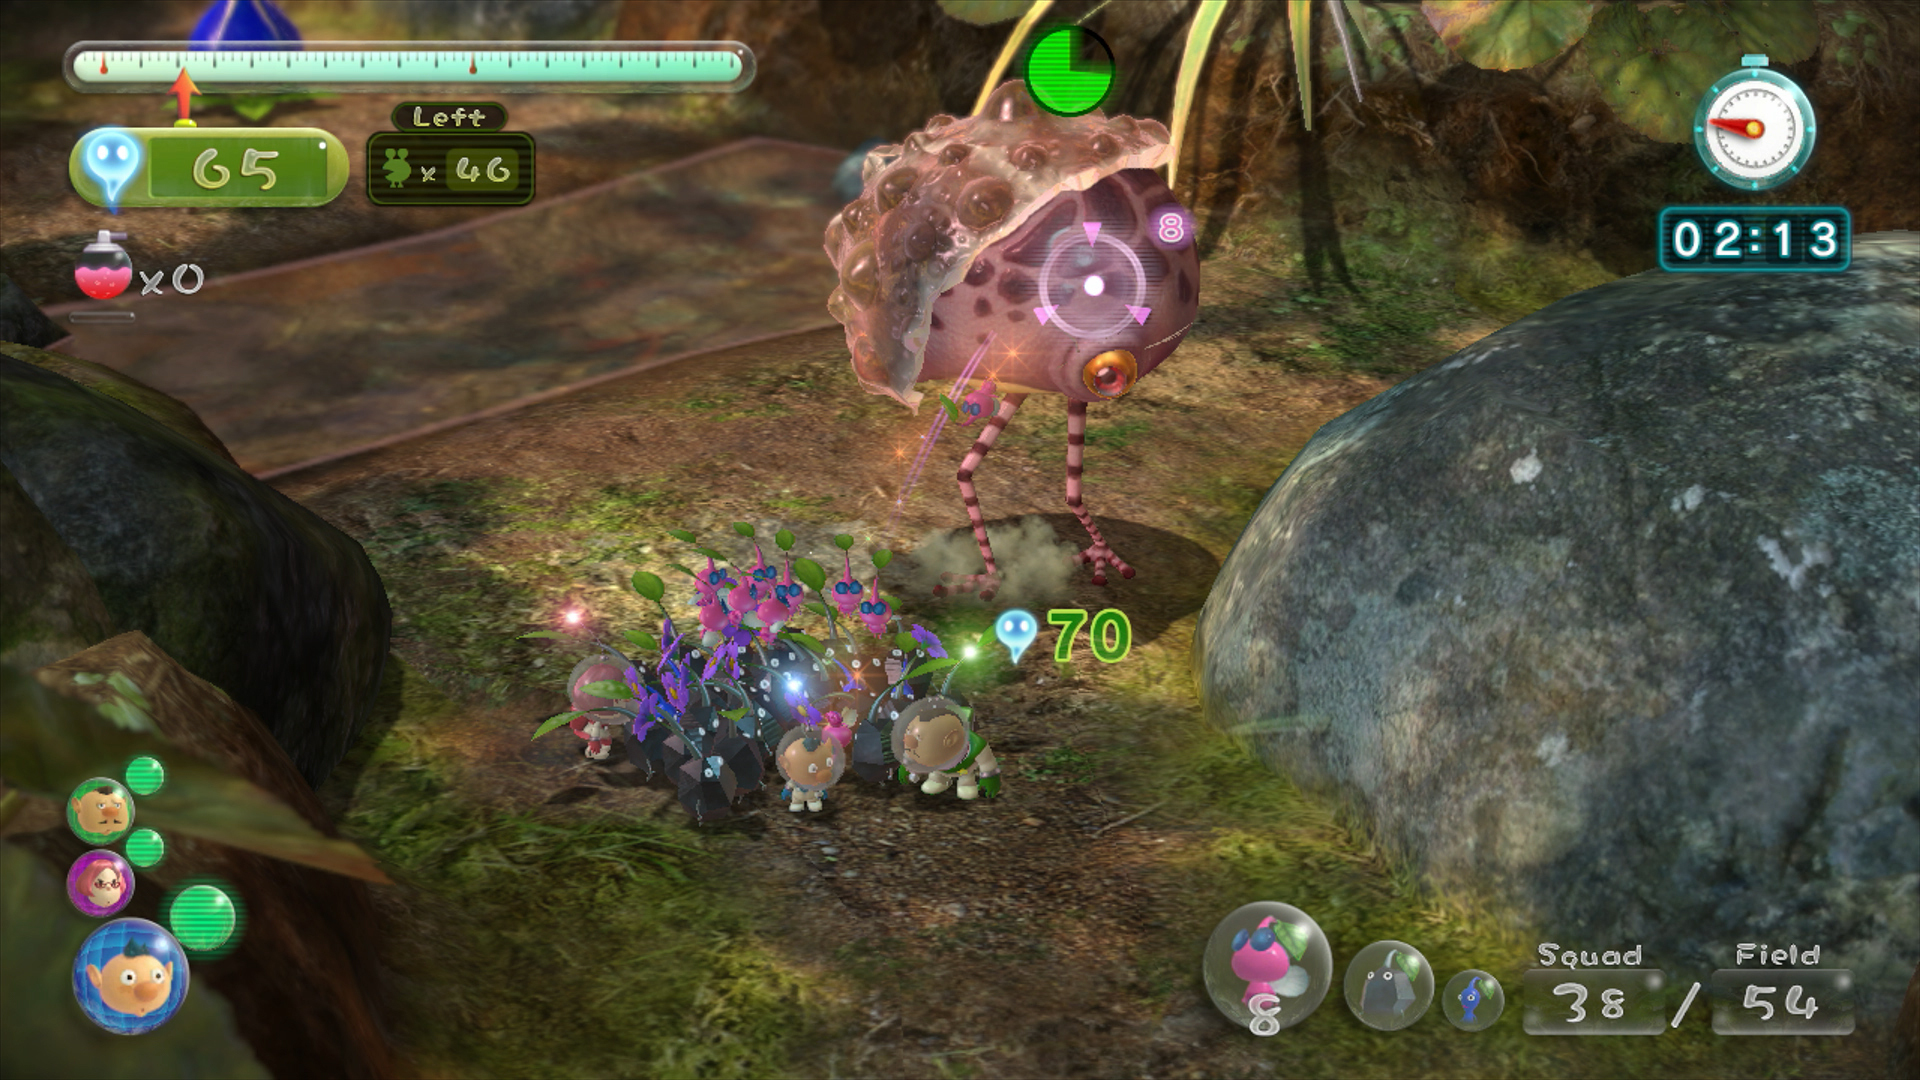 Adding Multimedia Nintendo News Battle Hordes Of Enemies In New Action Packed Dlc For Pikmin 3 Business Wire